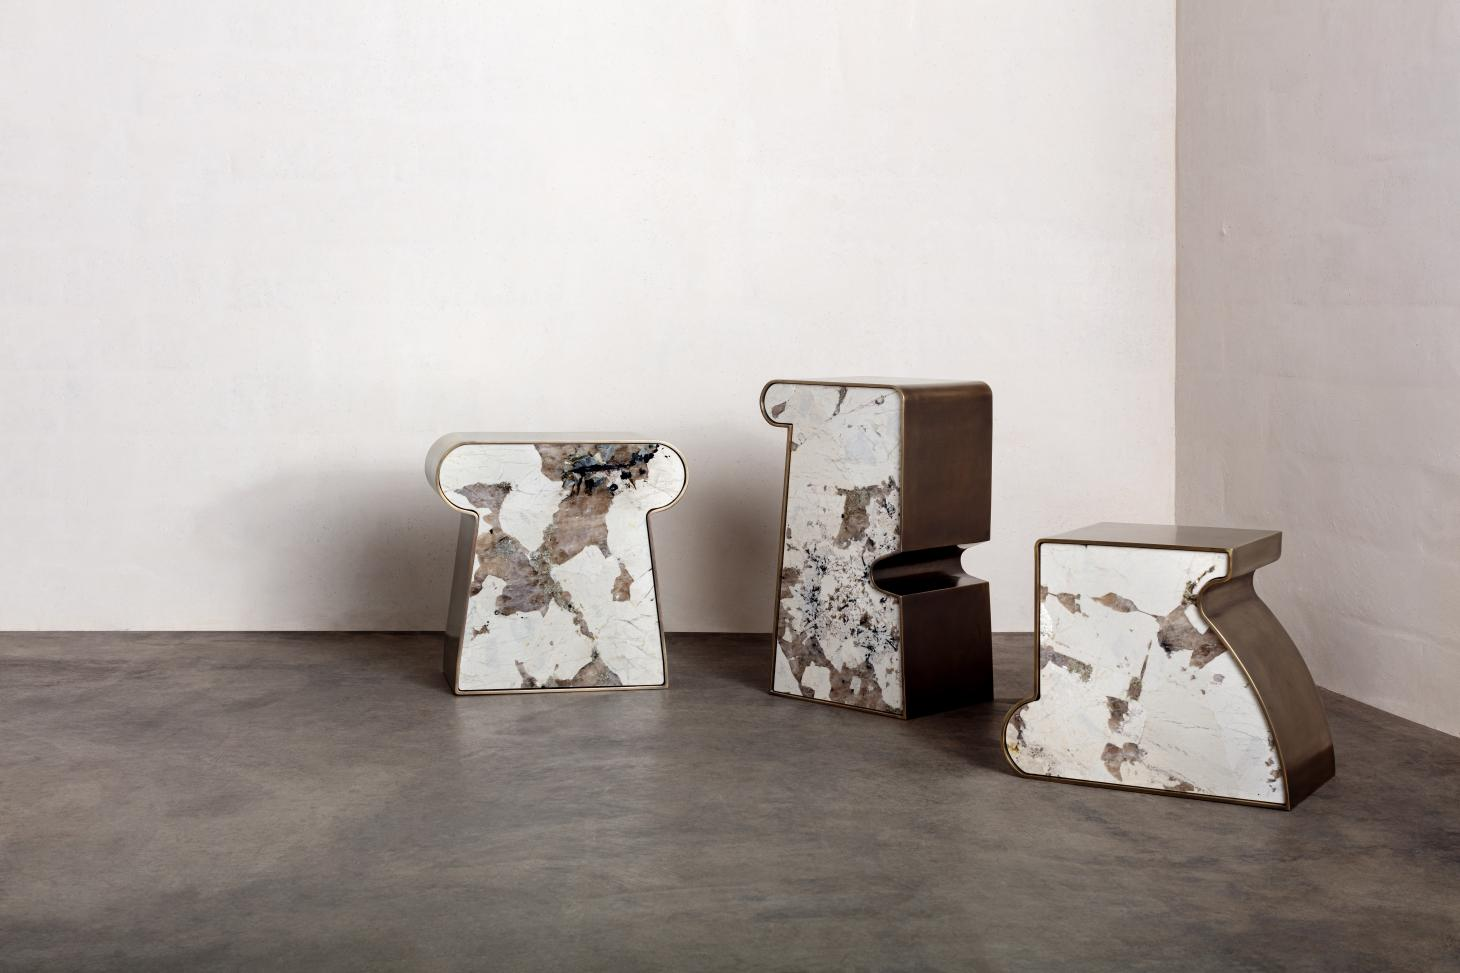 Triad side tables by Kelly Wearstler, characterized by monolithic forms in marble and brass